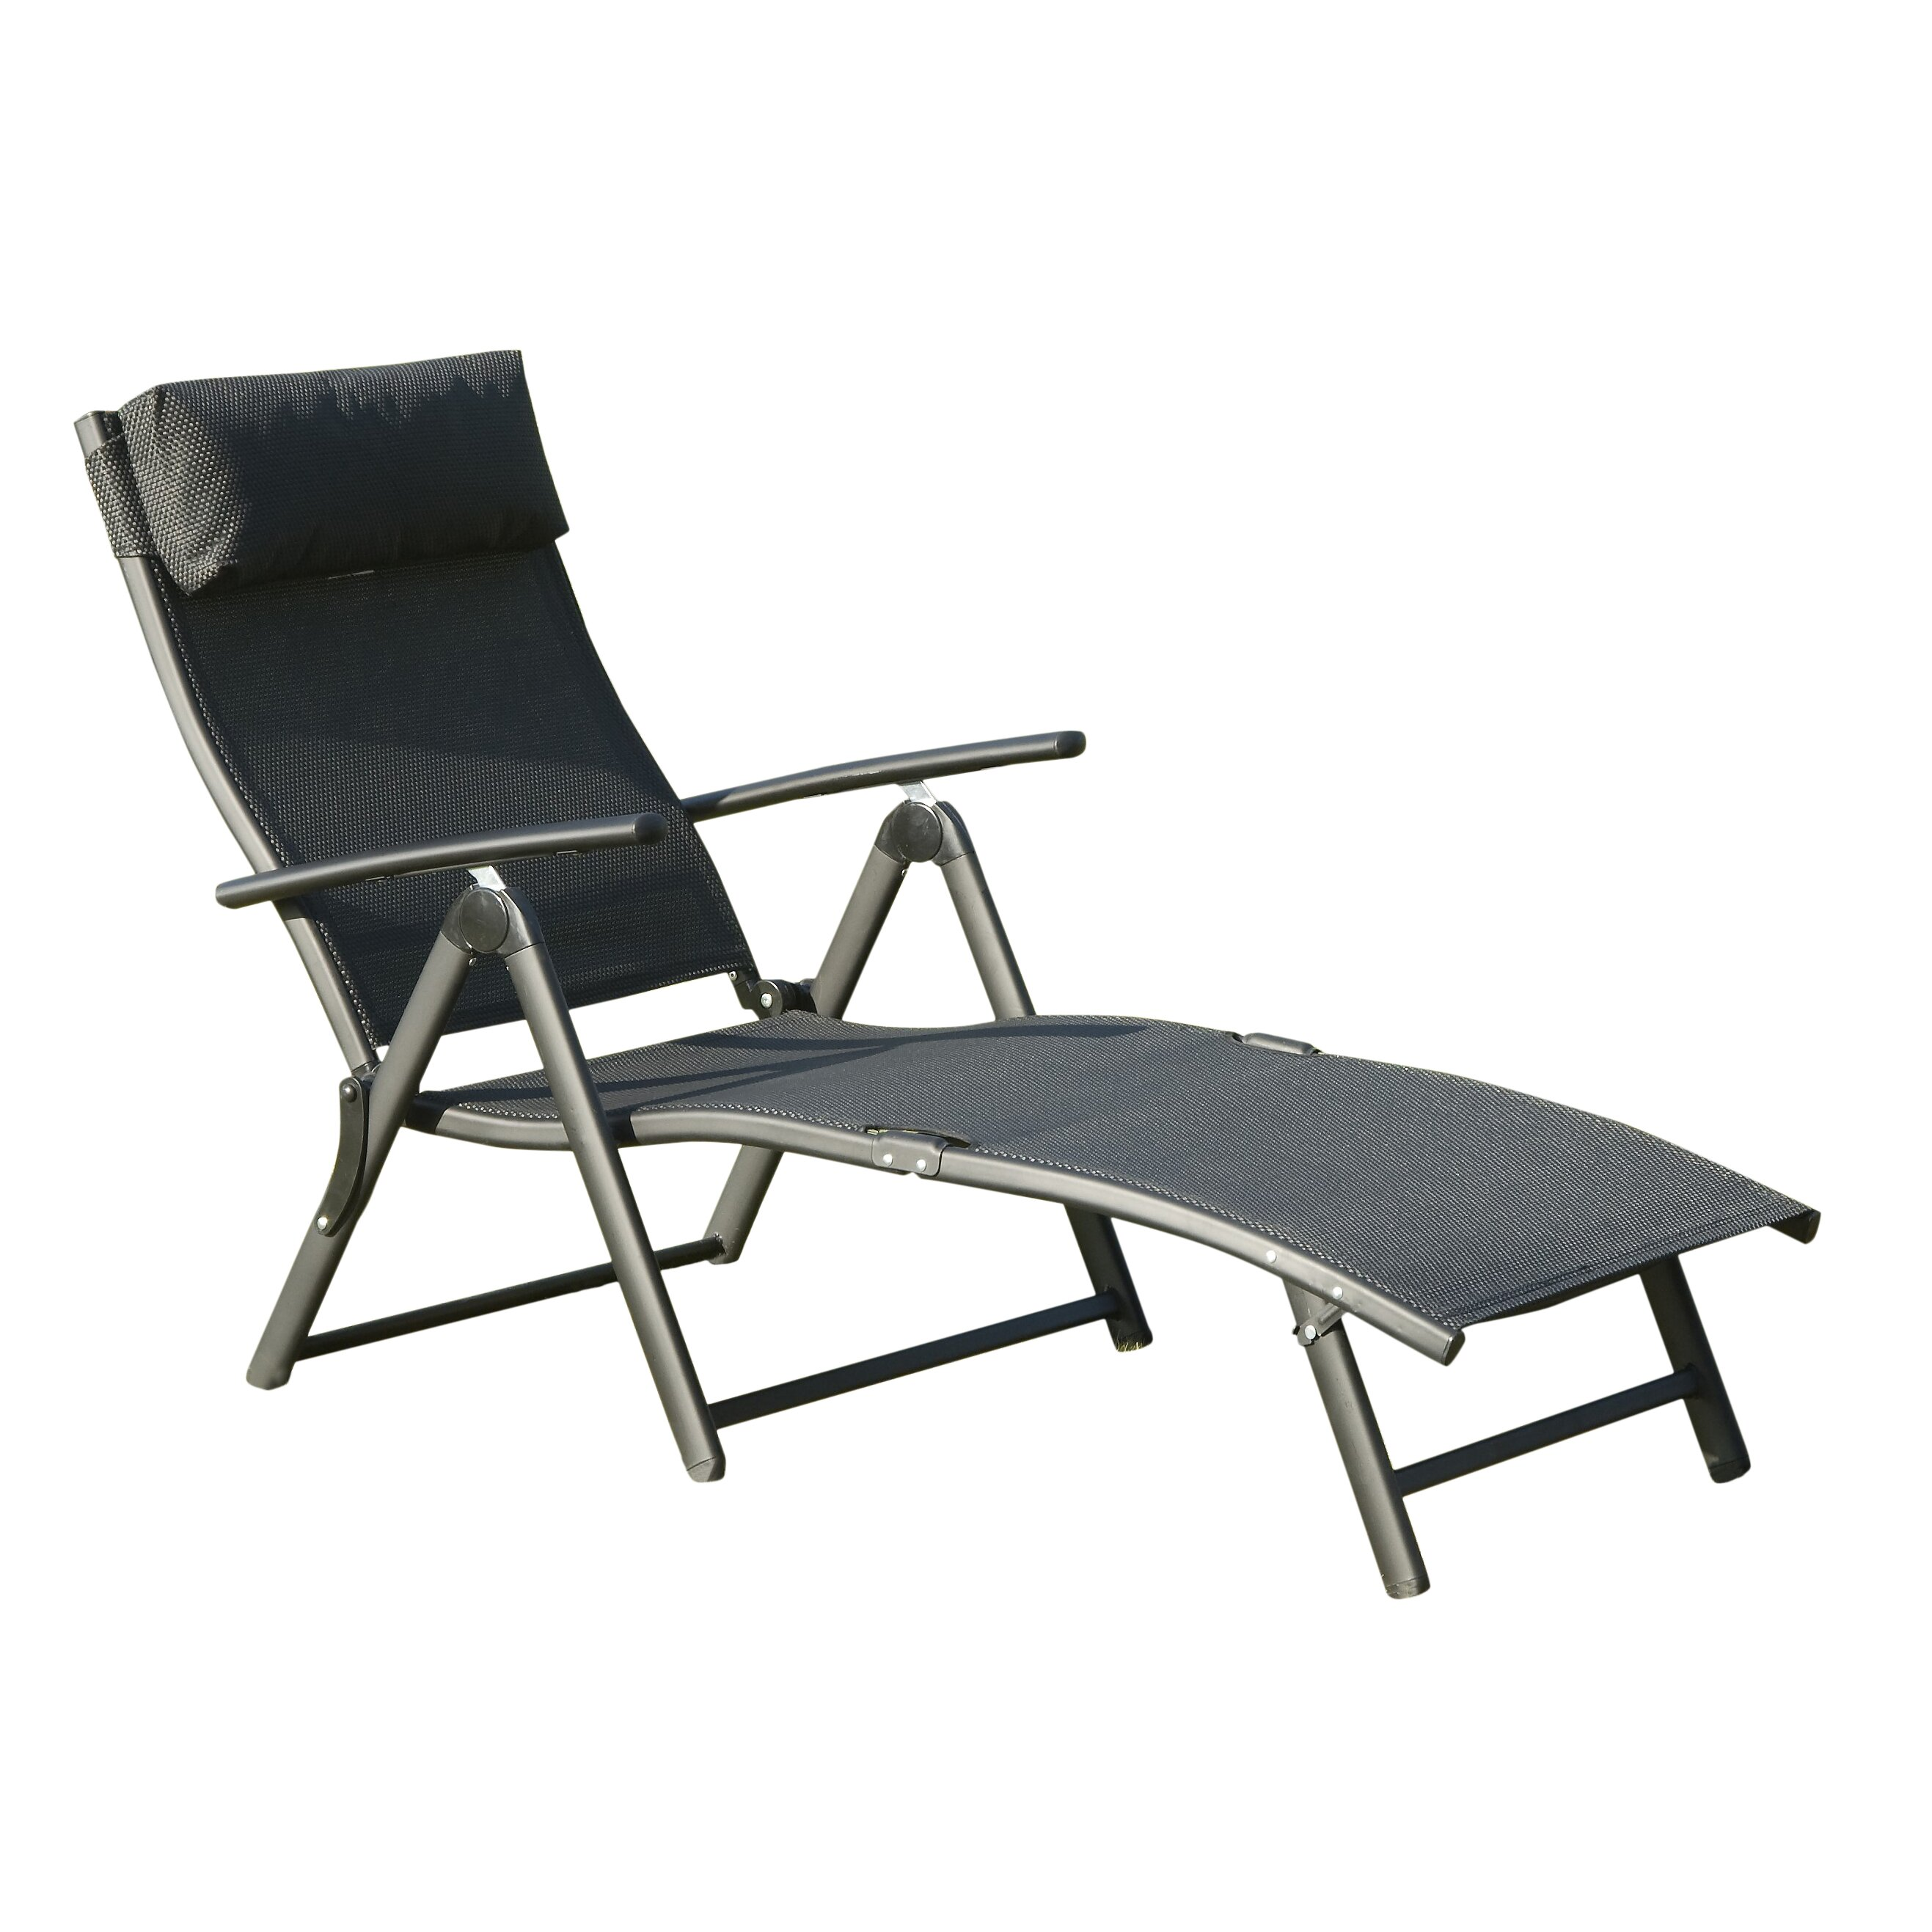 Suntime outdoor living havana chaise lounge reviews for Buy outdoor chaise lounge